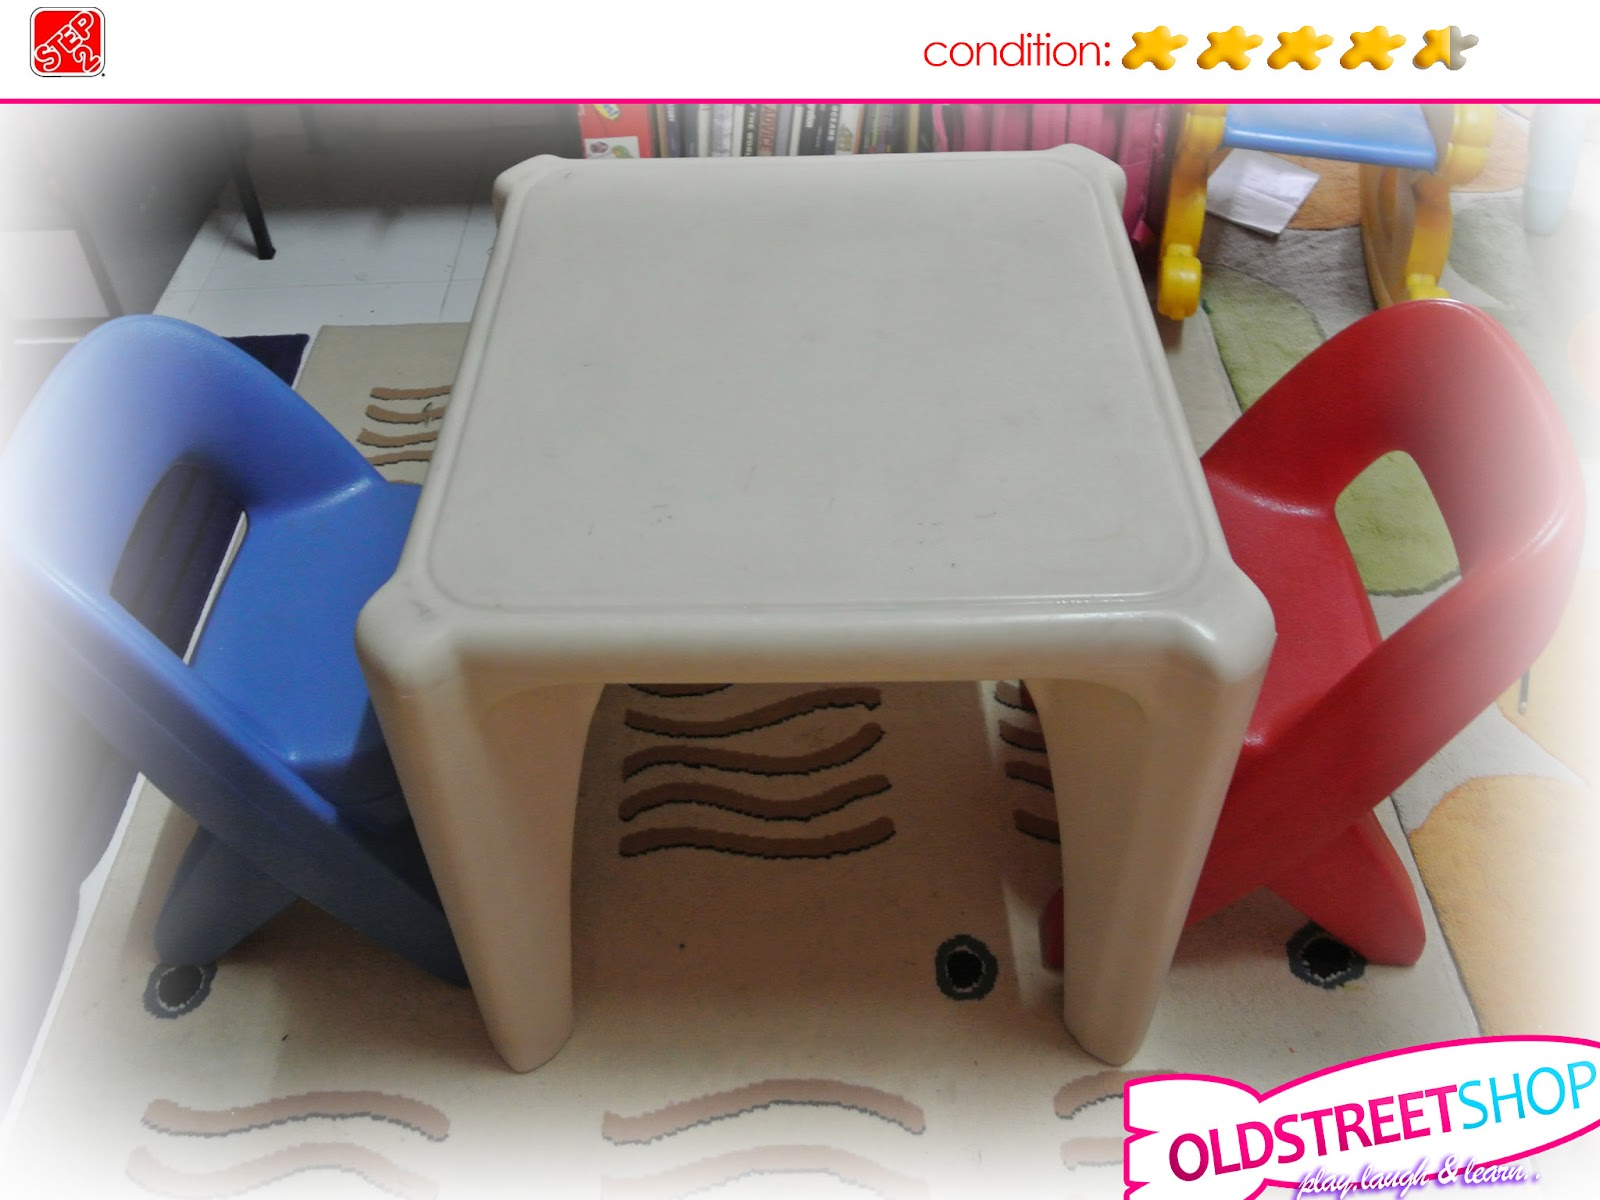 Step 2 Chair Cheap Video Game Chairs Oldstreetshop Desk And